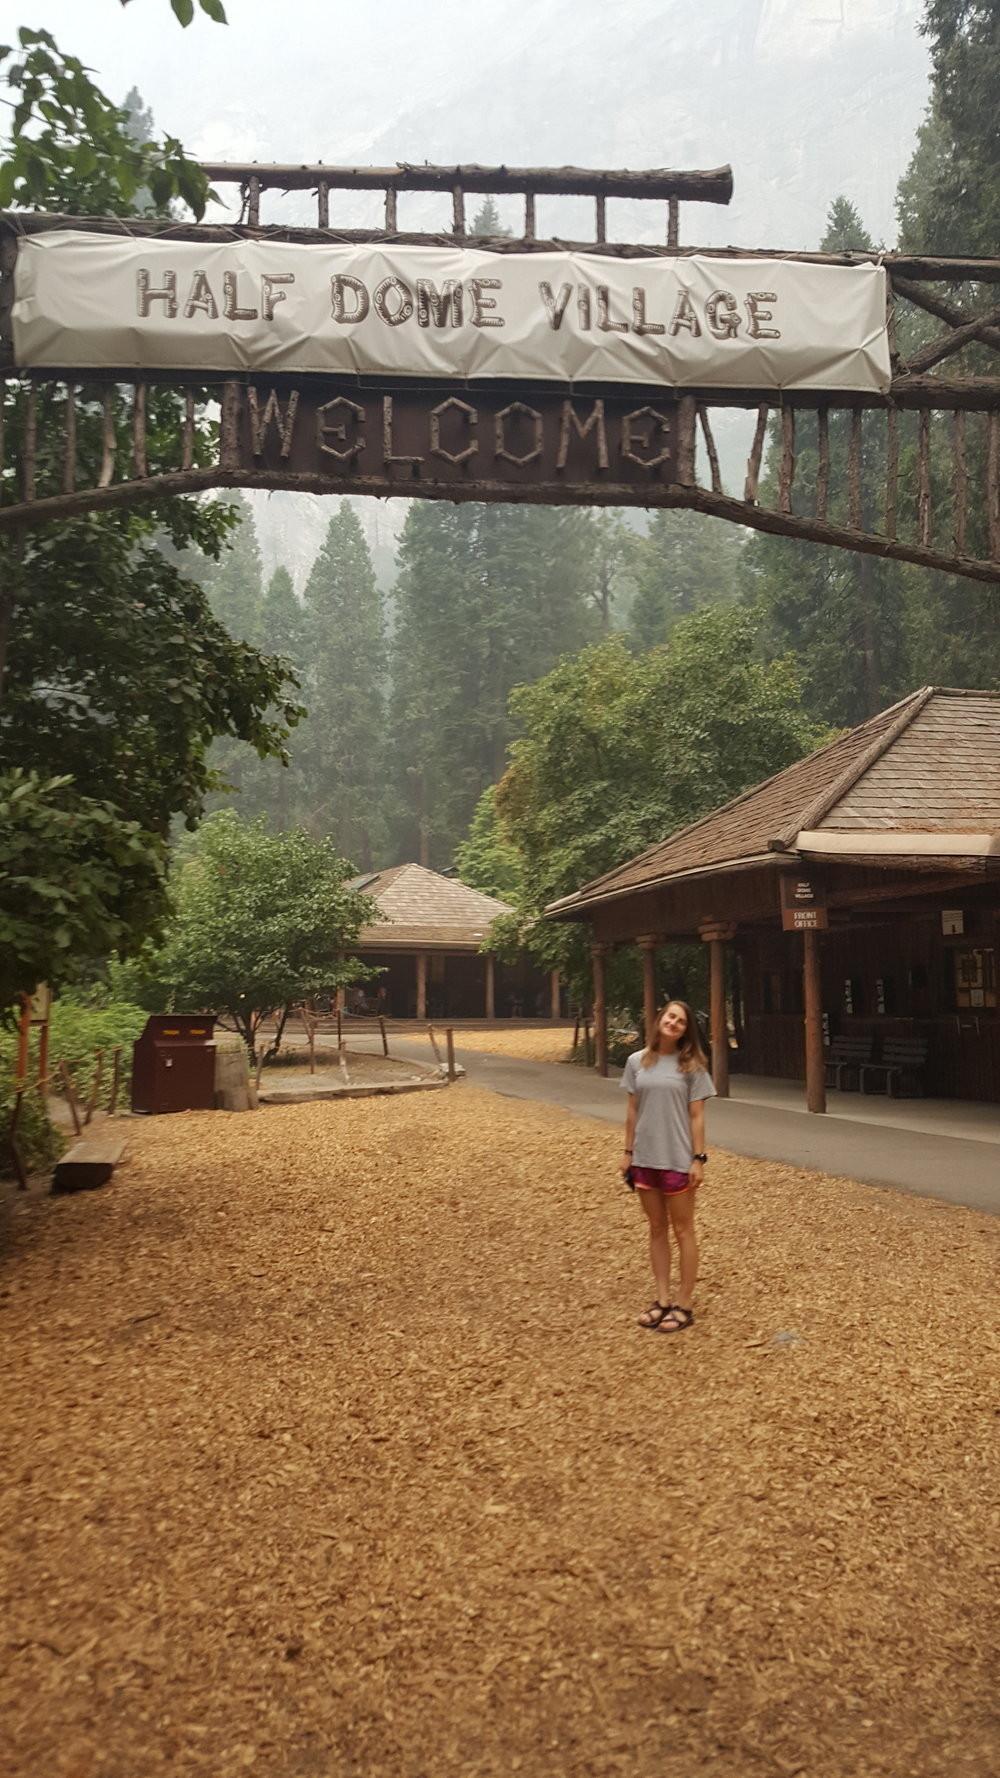 Half Dome Village sign feat. a clean Katie!